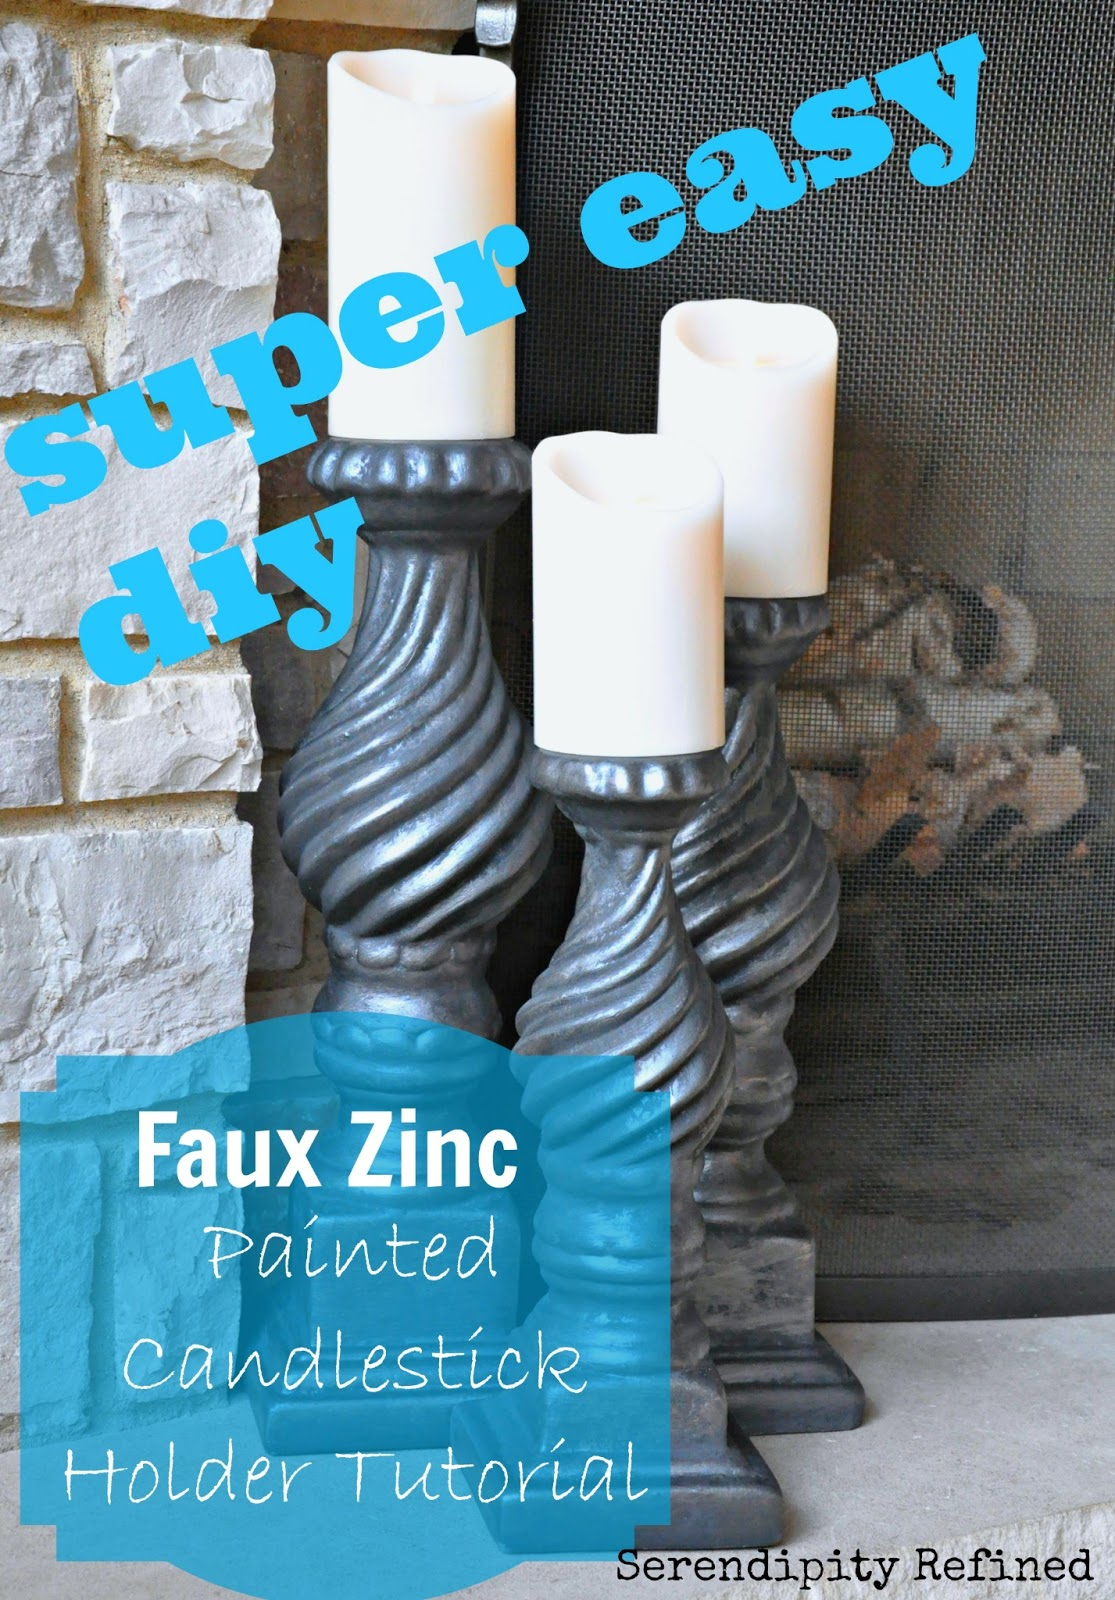 3 Easy Diy Storage Ideas For Small Kitchen: Serendipity Refined Blog: EASY DIY: Super Simple Faux Zinc